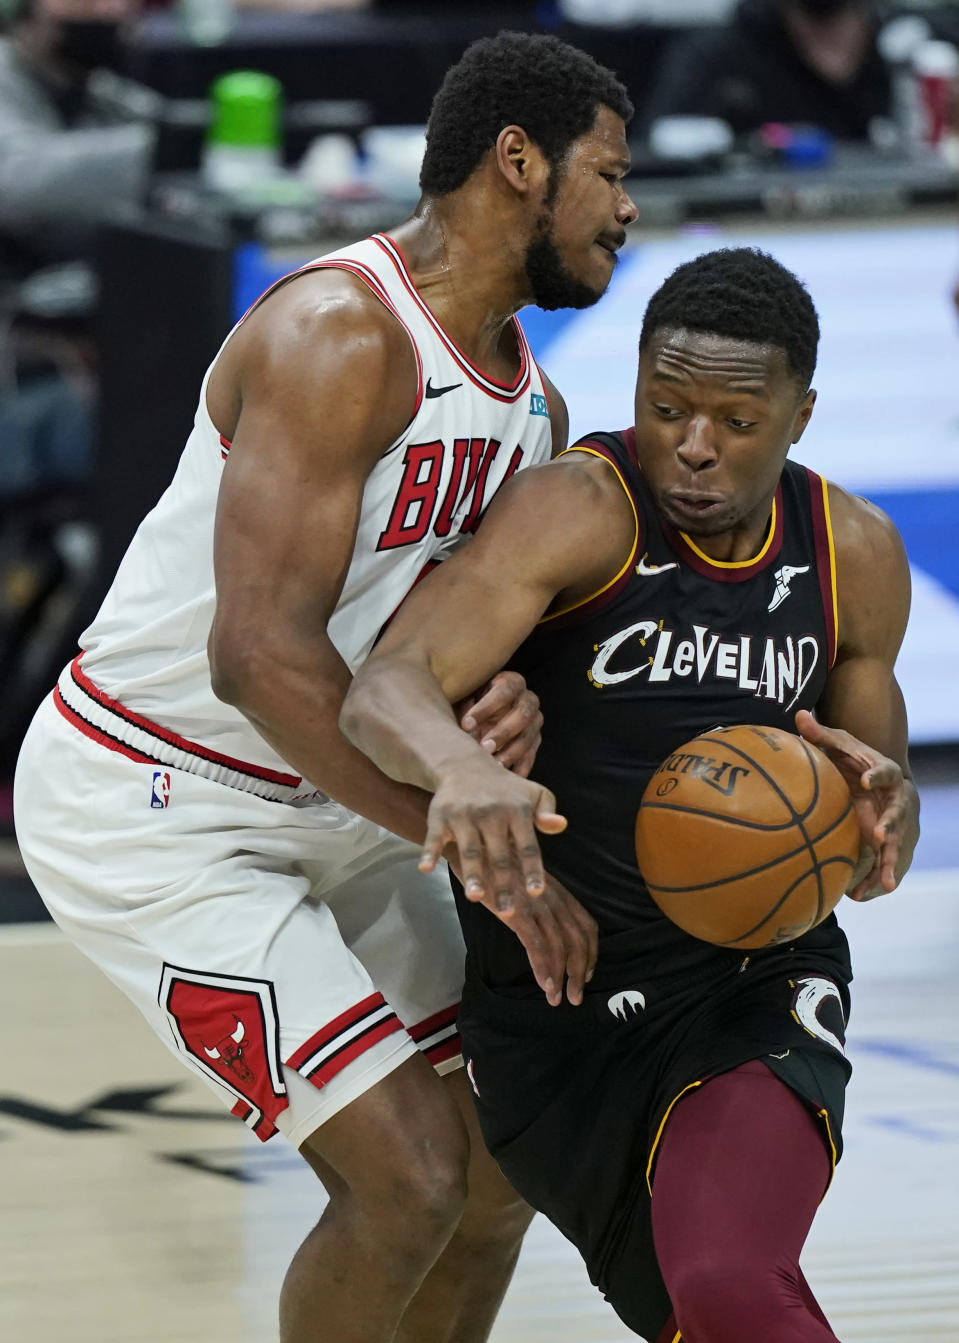 Cleveland Cavaliers' Mfiondu Kabengele, right, drives past Chicago Bulls' Cristiano Felicio during the second half of an NBA basketball game, Wednesday, April 21, 2021, in Cleveland. (AP Photo/Tony Dejak)